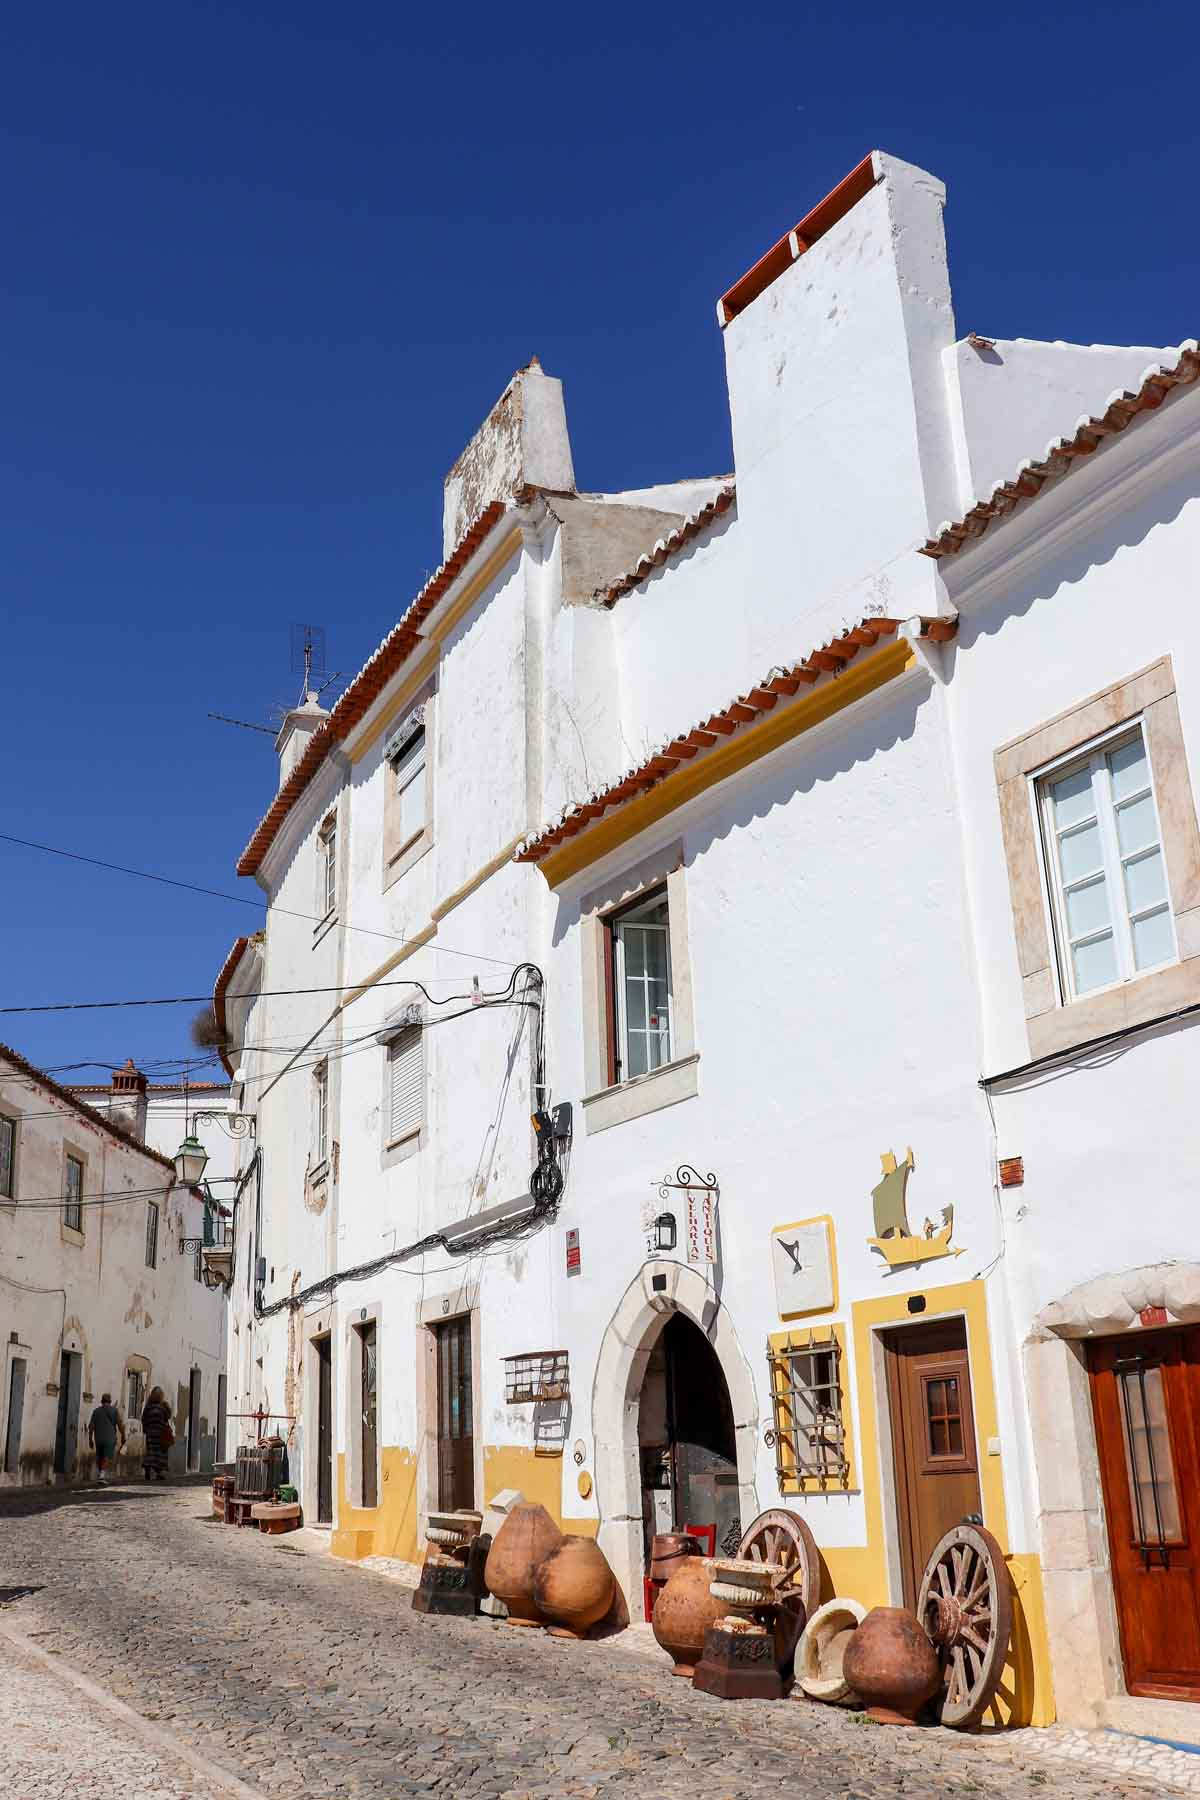 Rondreis Alentejo, Estremoz - Map of Joy